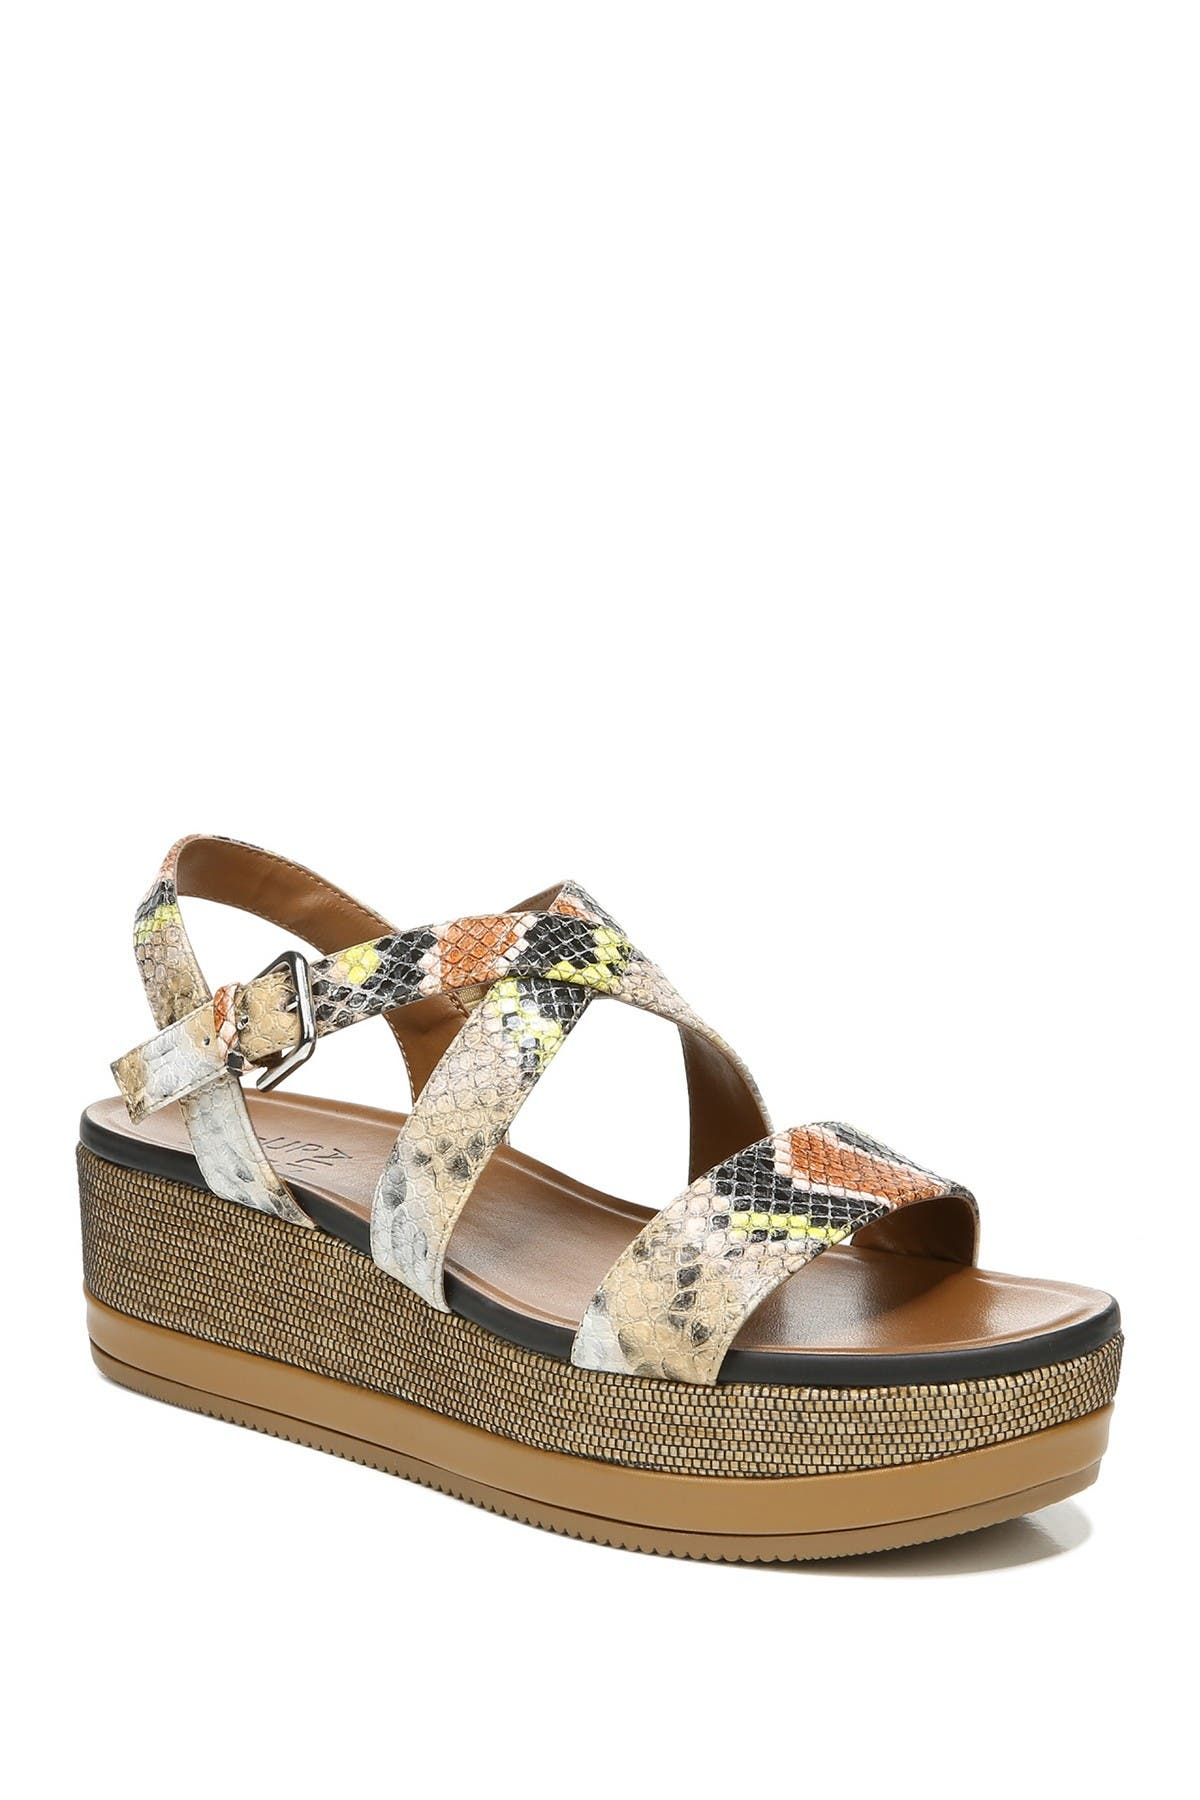 Image of Naturalizer Nadira Wedge Sandal